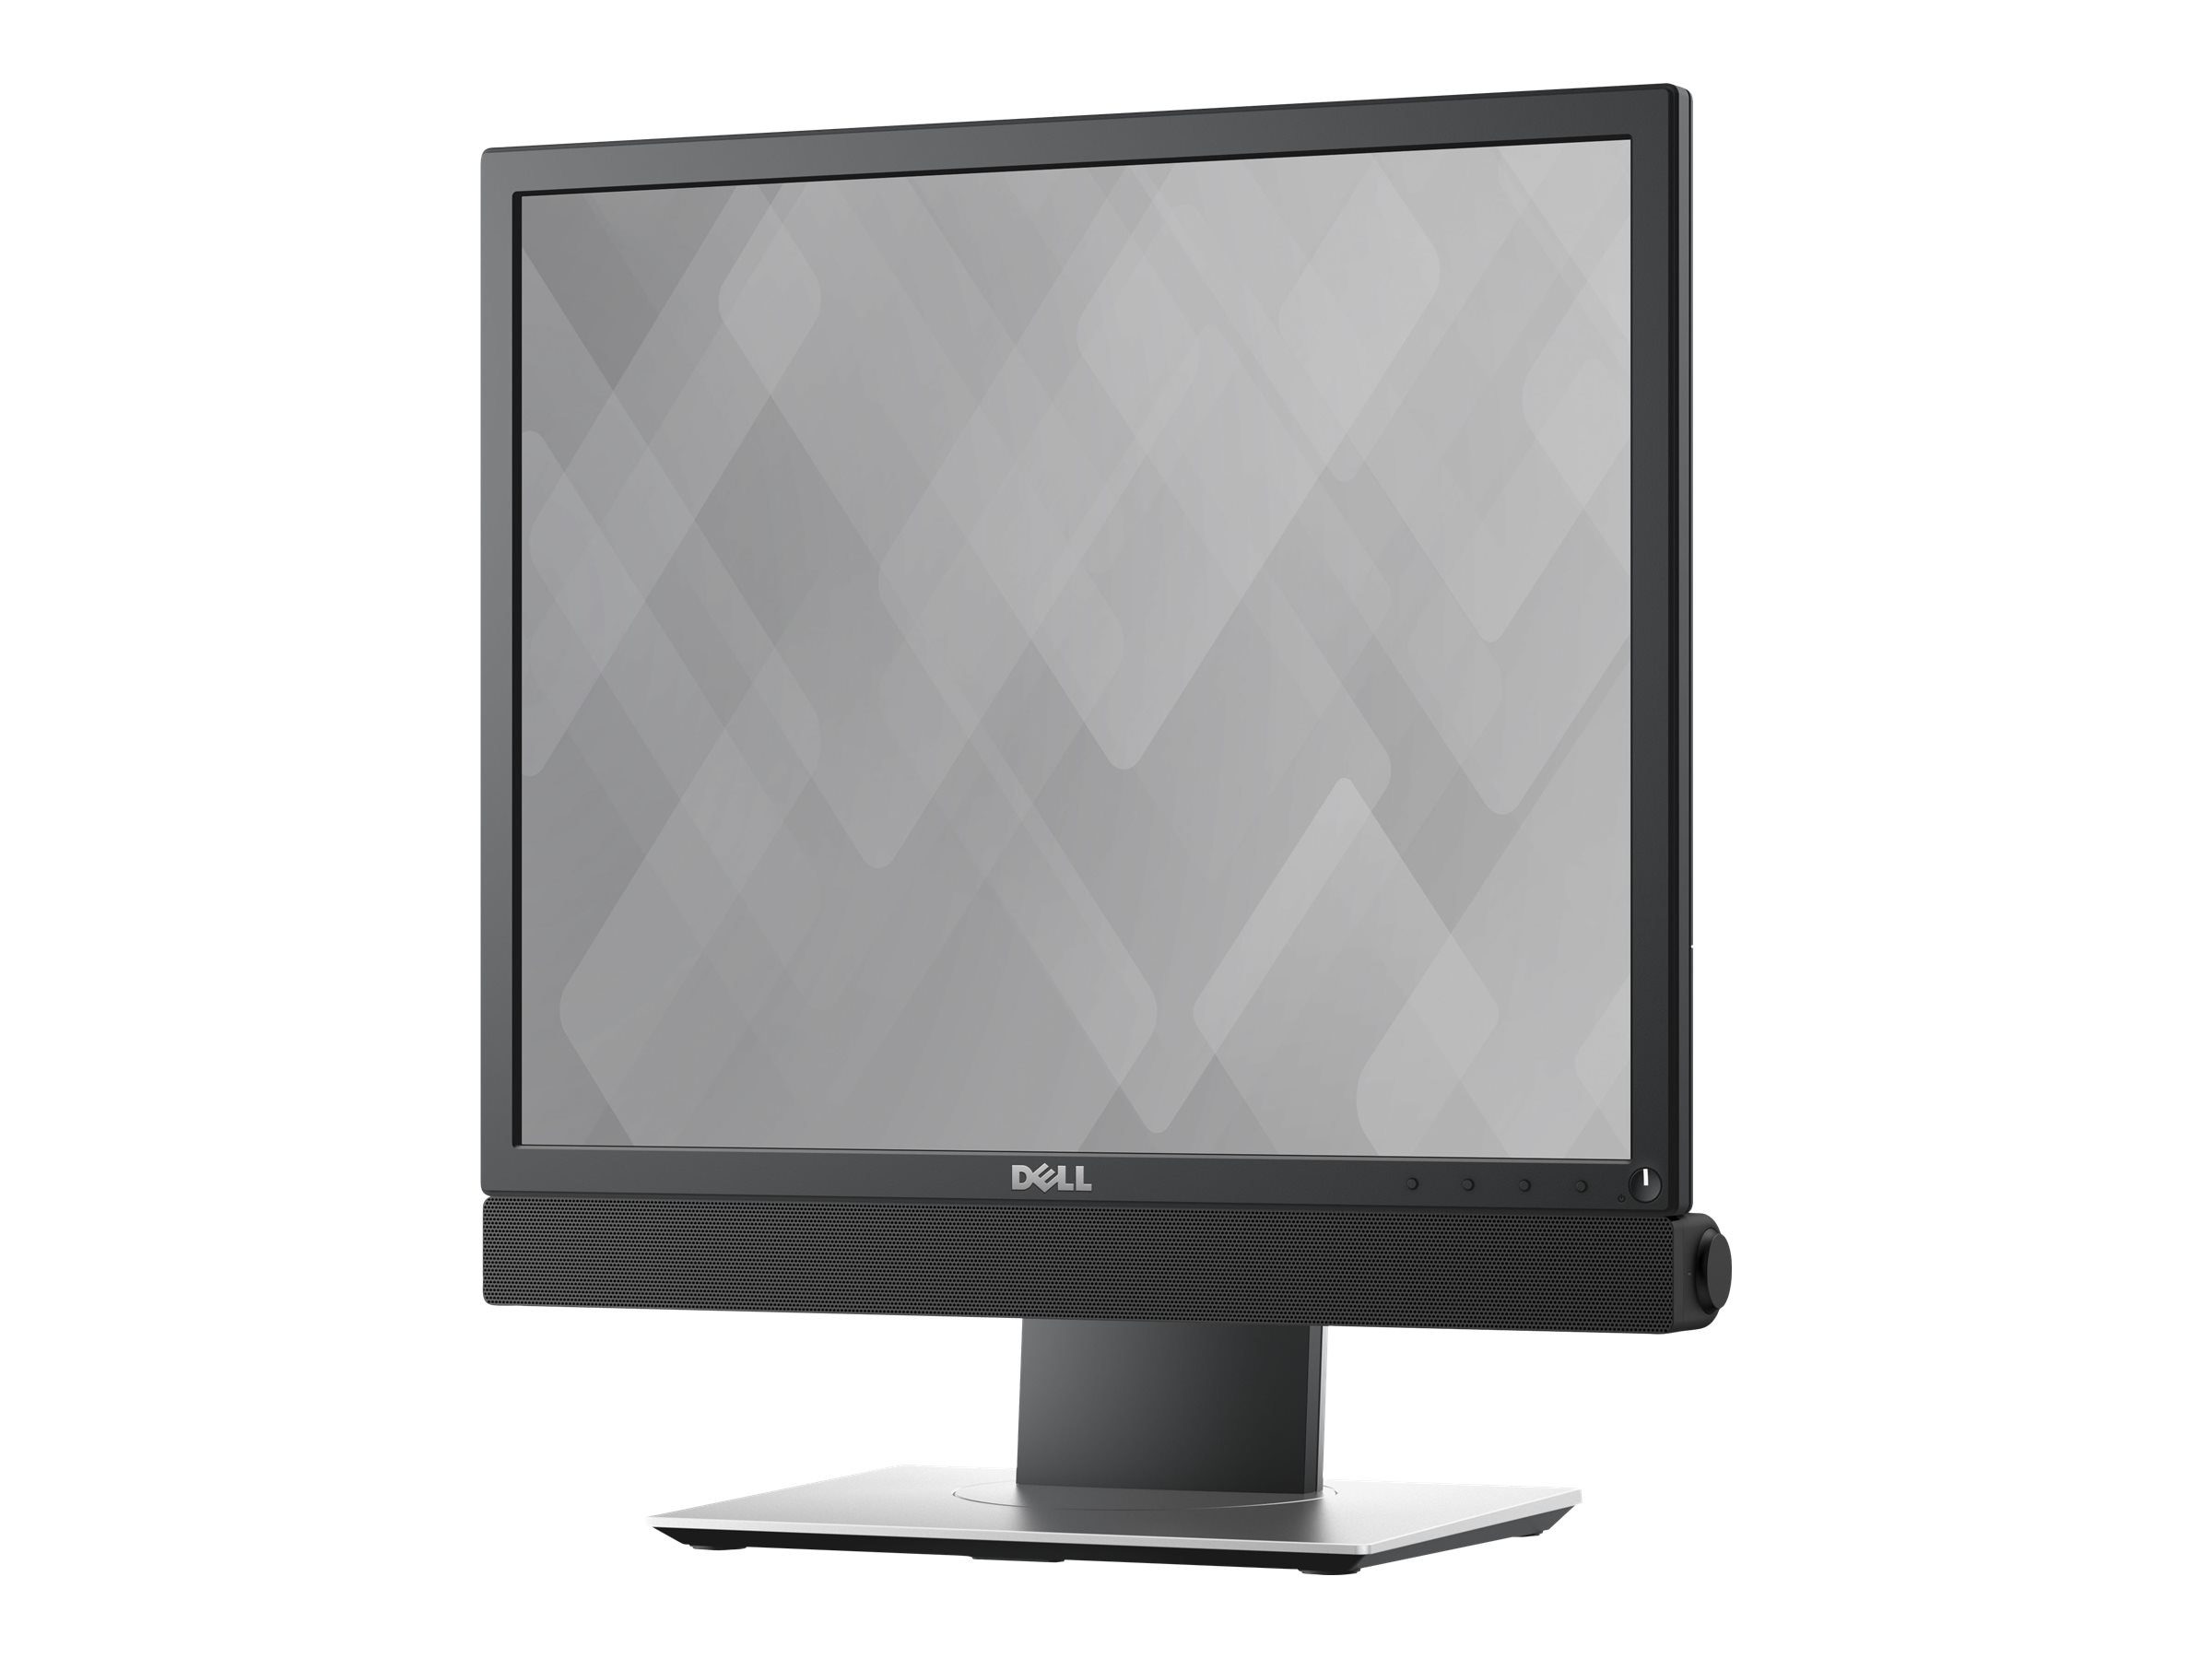 Dell 19 P1917S LED-LCD Monitor, Black, P1917S